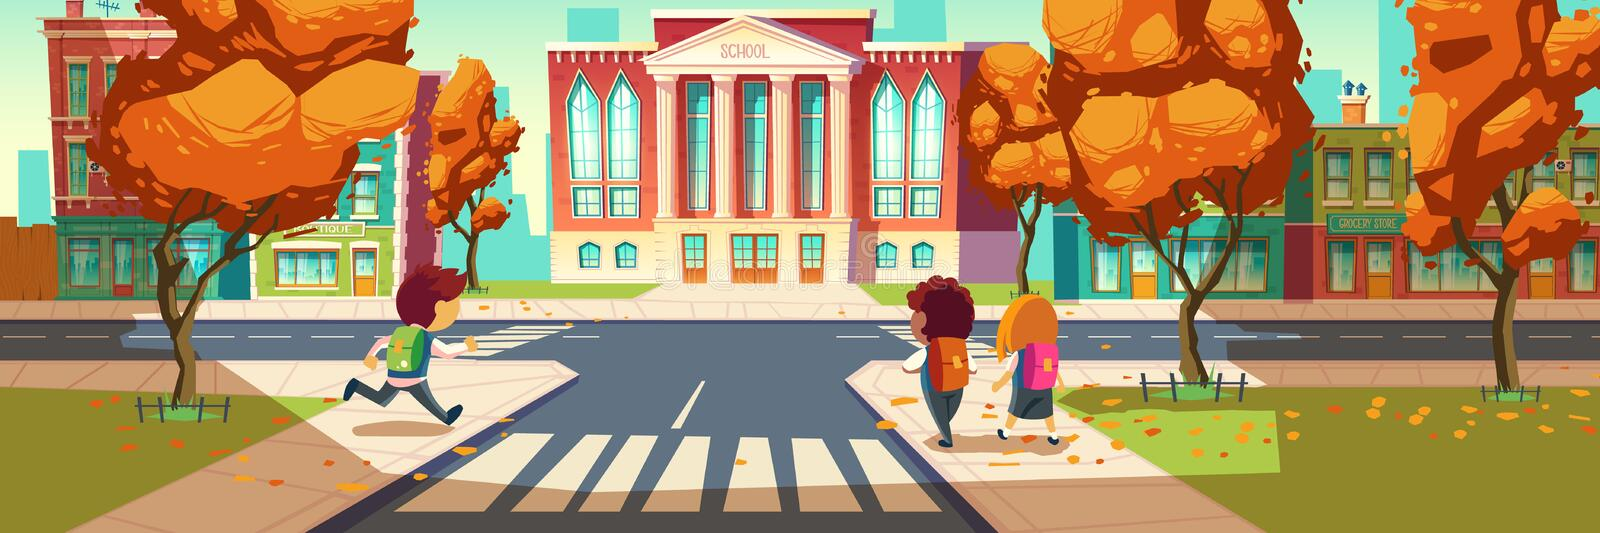 Kids go to school, little students, boys and girl royalty free illustration